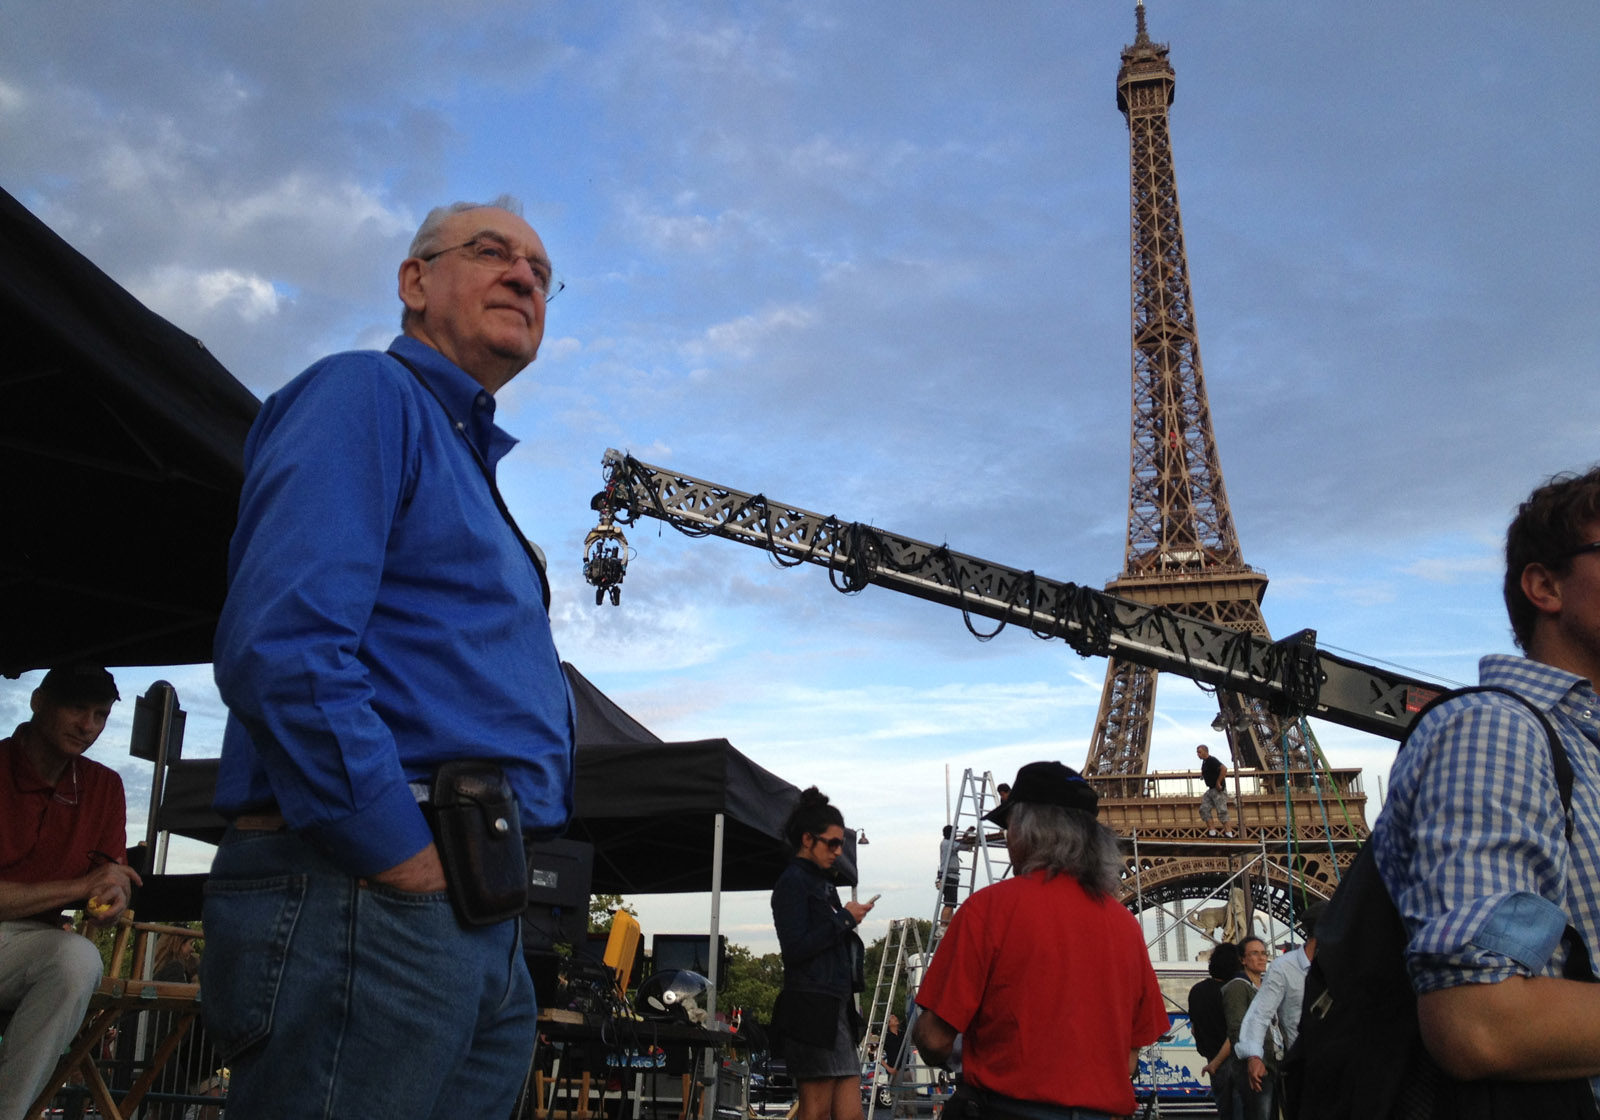 On the set of Smurfs 2 in Paris